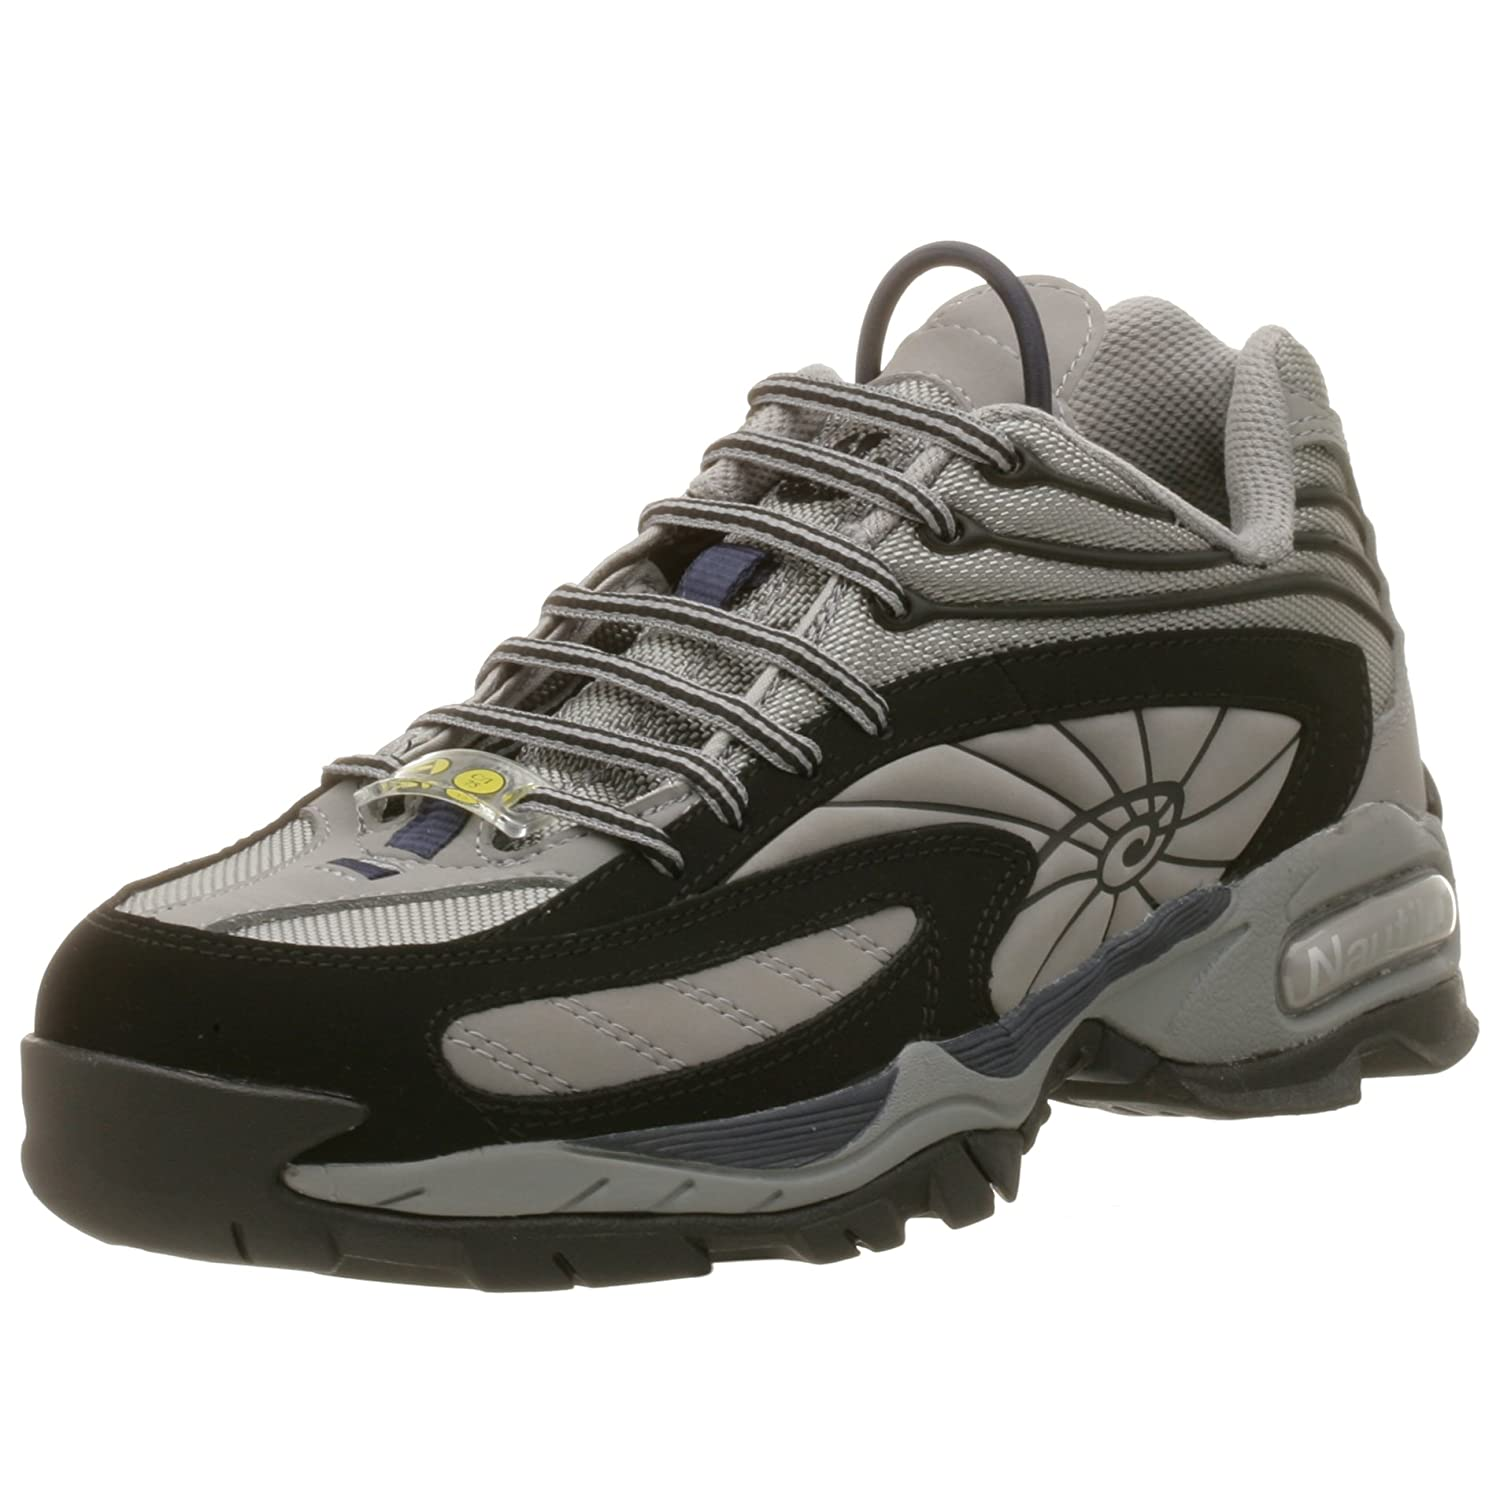 Nautilus 1320 ESD no ExposedメタルSafety Toe Athletic Shoe グレー 12 D(M) US 12 D(M) USグレー B000IX2VFG